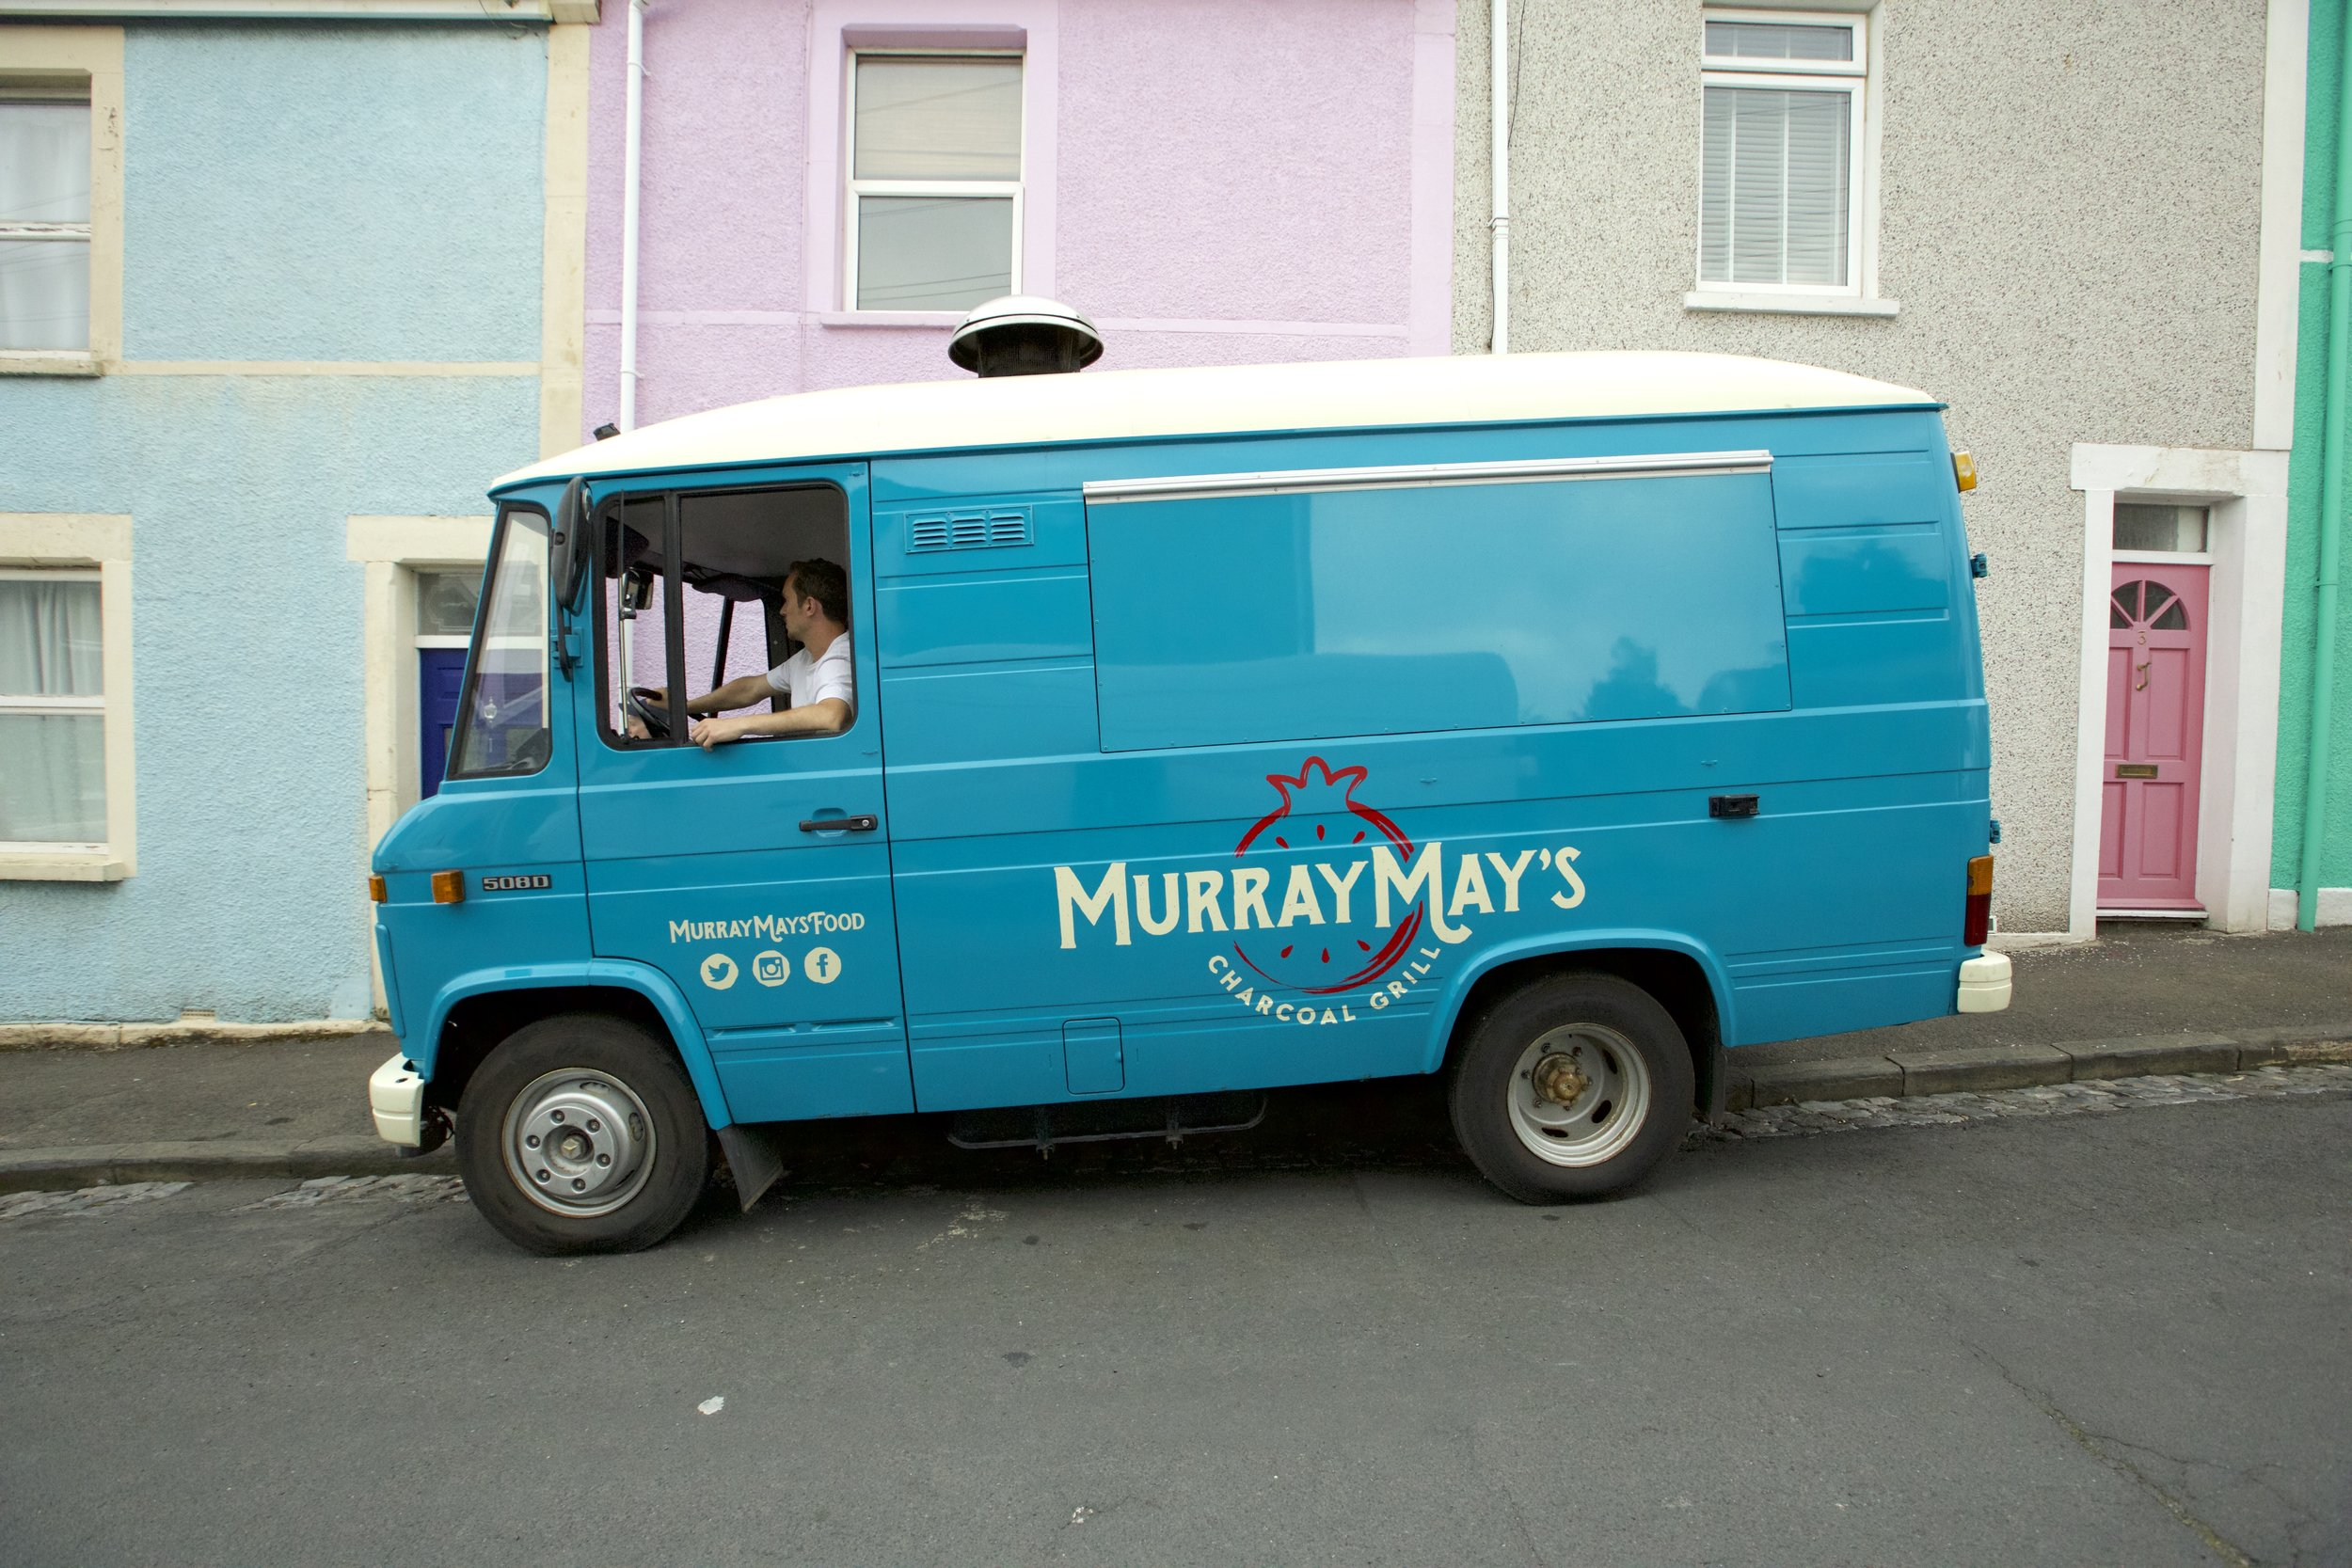 THE VAN - Our van 'Nessie' is a 1987 Mercedes 508D ex-military Dutch ambulance. She is converted (a labour of love!) to an exceptionally high standard. Resprayed in a beautiful blue teal, with a copper bar running the length of the hatch. The centrepiece of the kitchen is the Turkish mangal charcoal grill, we're sure we are the only food van to have one!